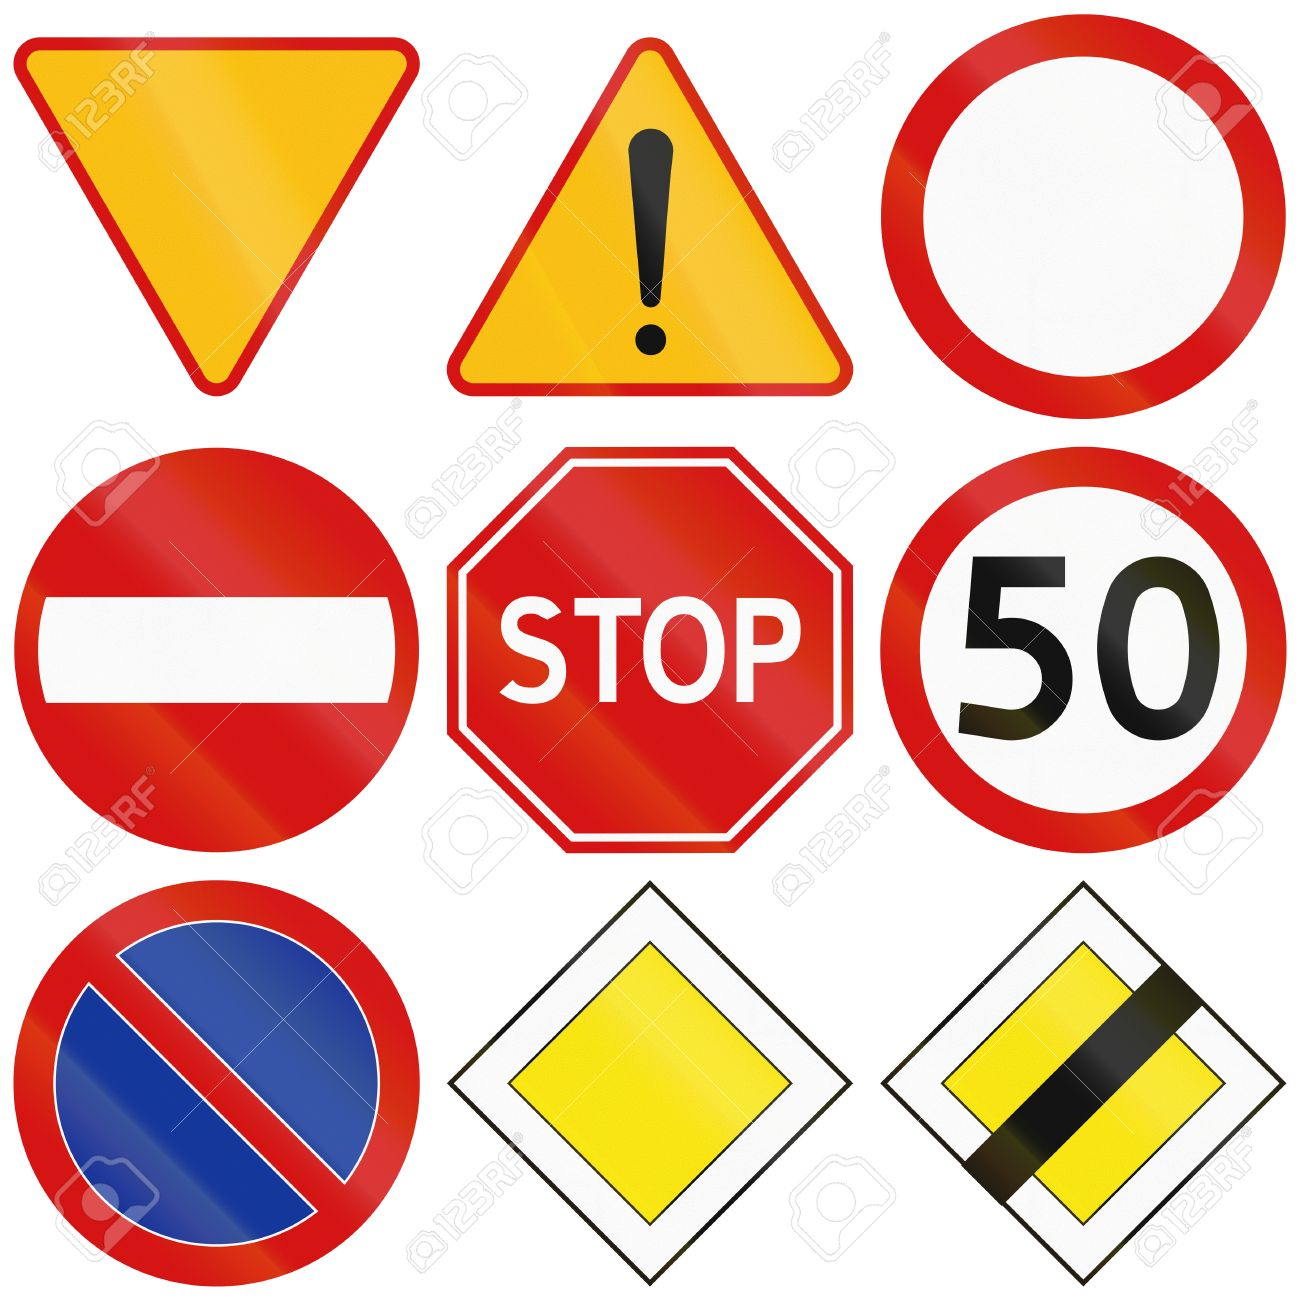 Traffic signs stock photos royalty free business images collection of the most common traffic signs in poland including yield stop general biocorpaavc